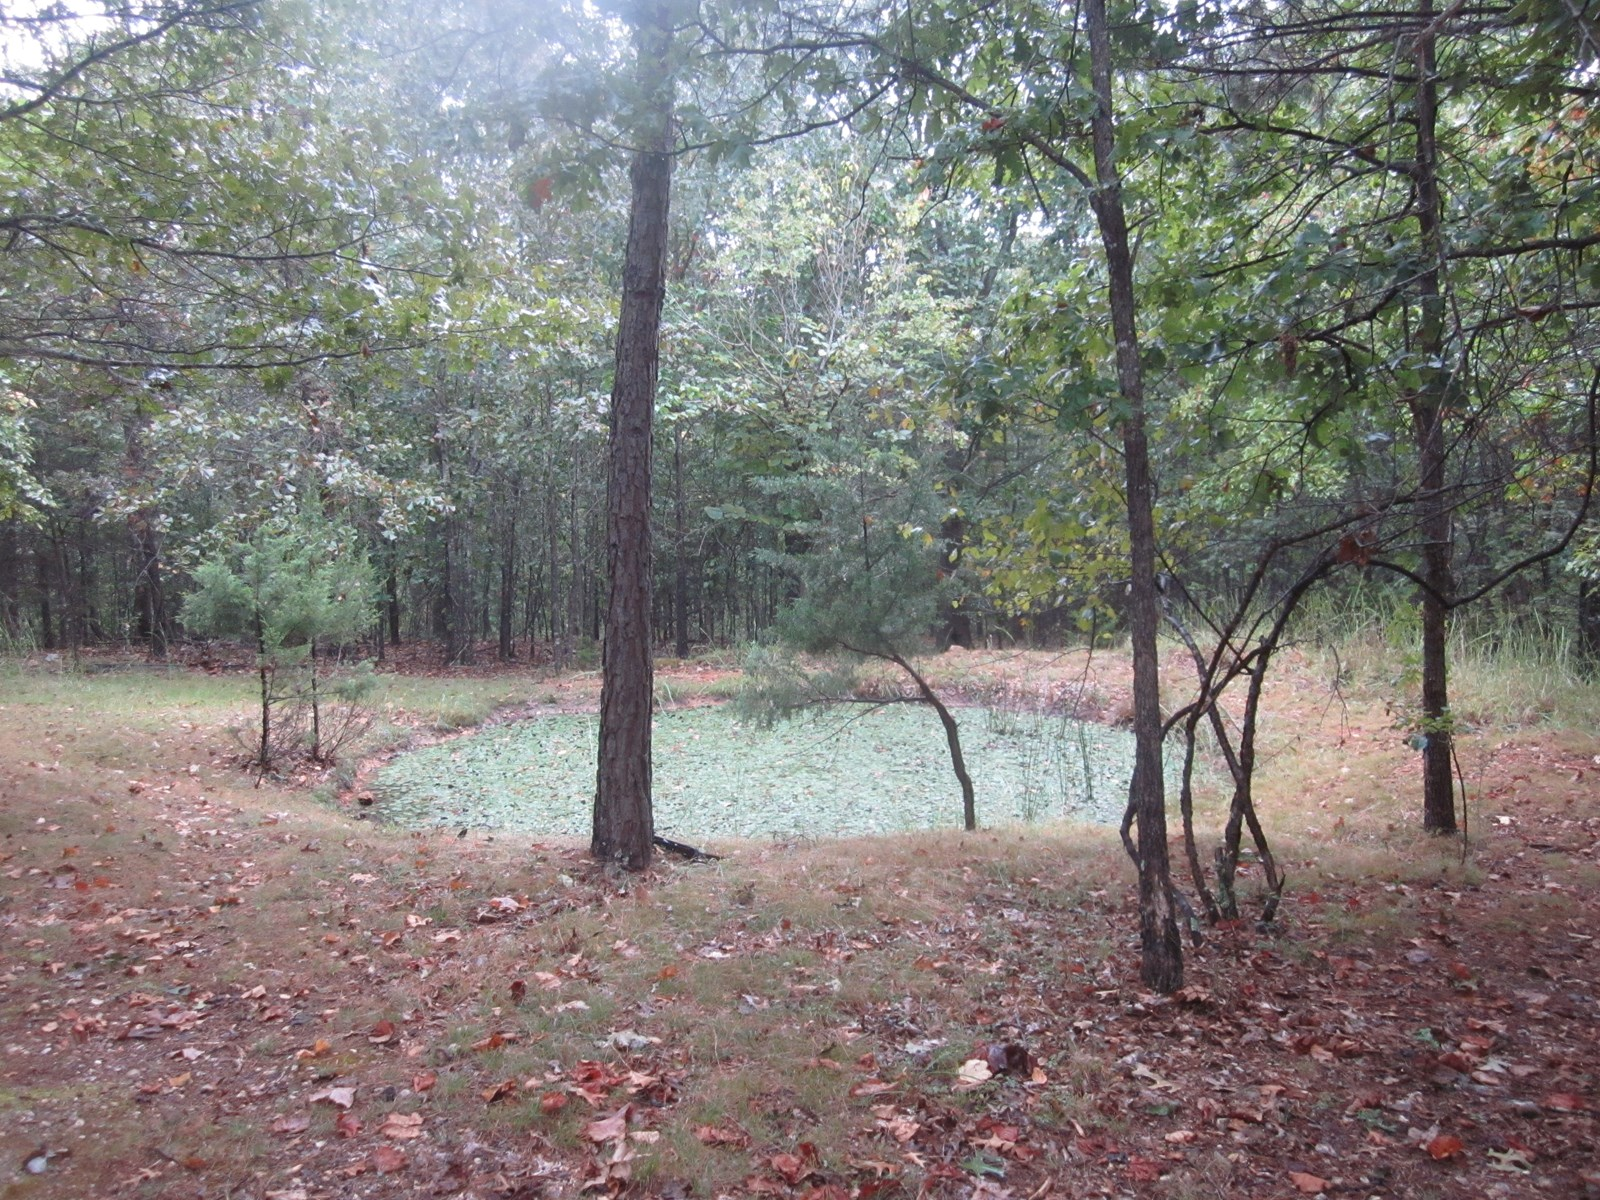 OZARK LAND FOR SALE WITH WELL AND SEPTIC ON SITE!